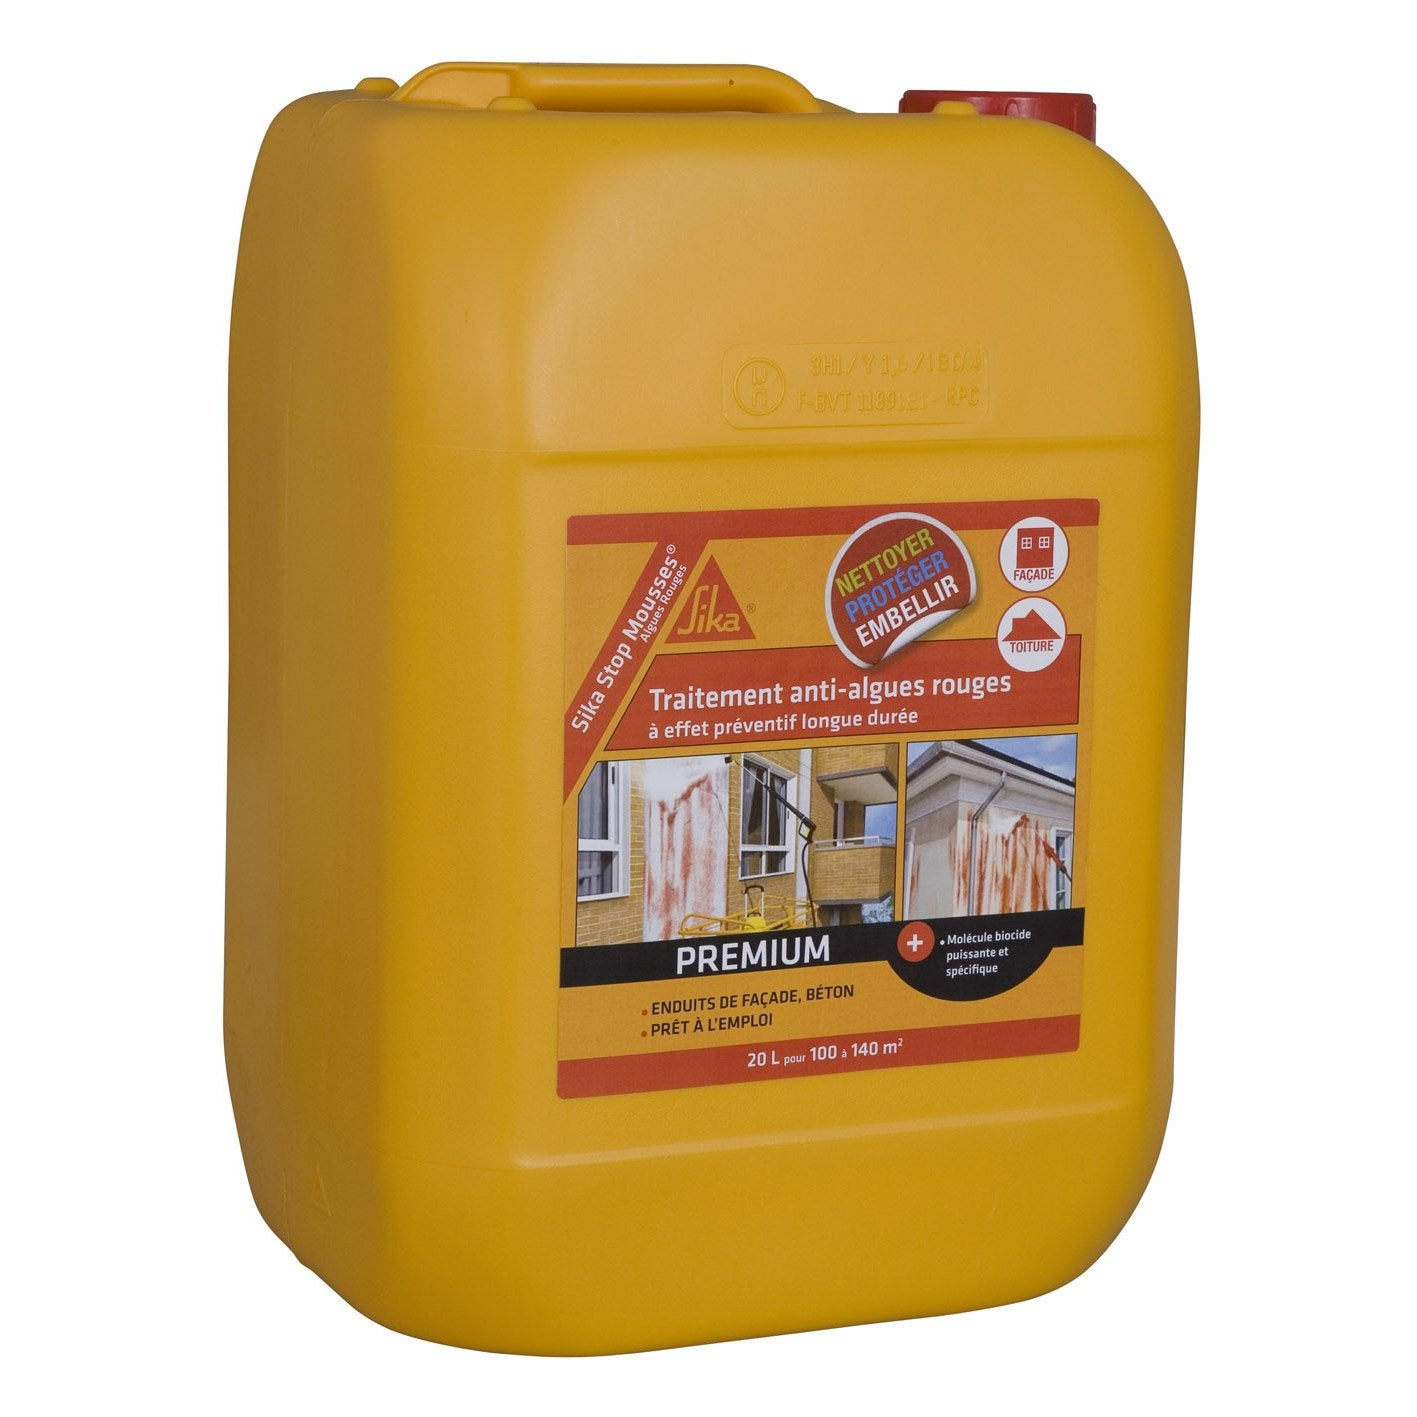 Antimousse sika sp cial antialgues rouges 20 l leroy merlin for Produit anti punaise de lit leroy merlin